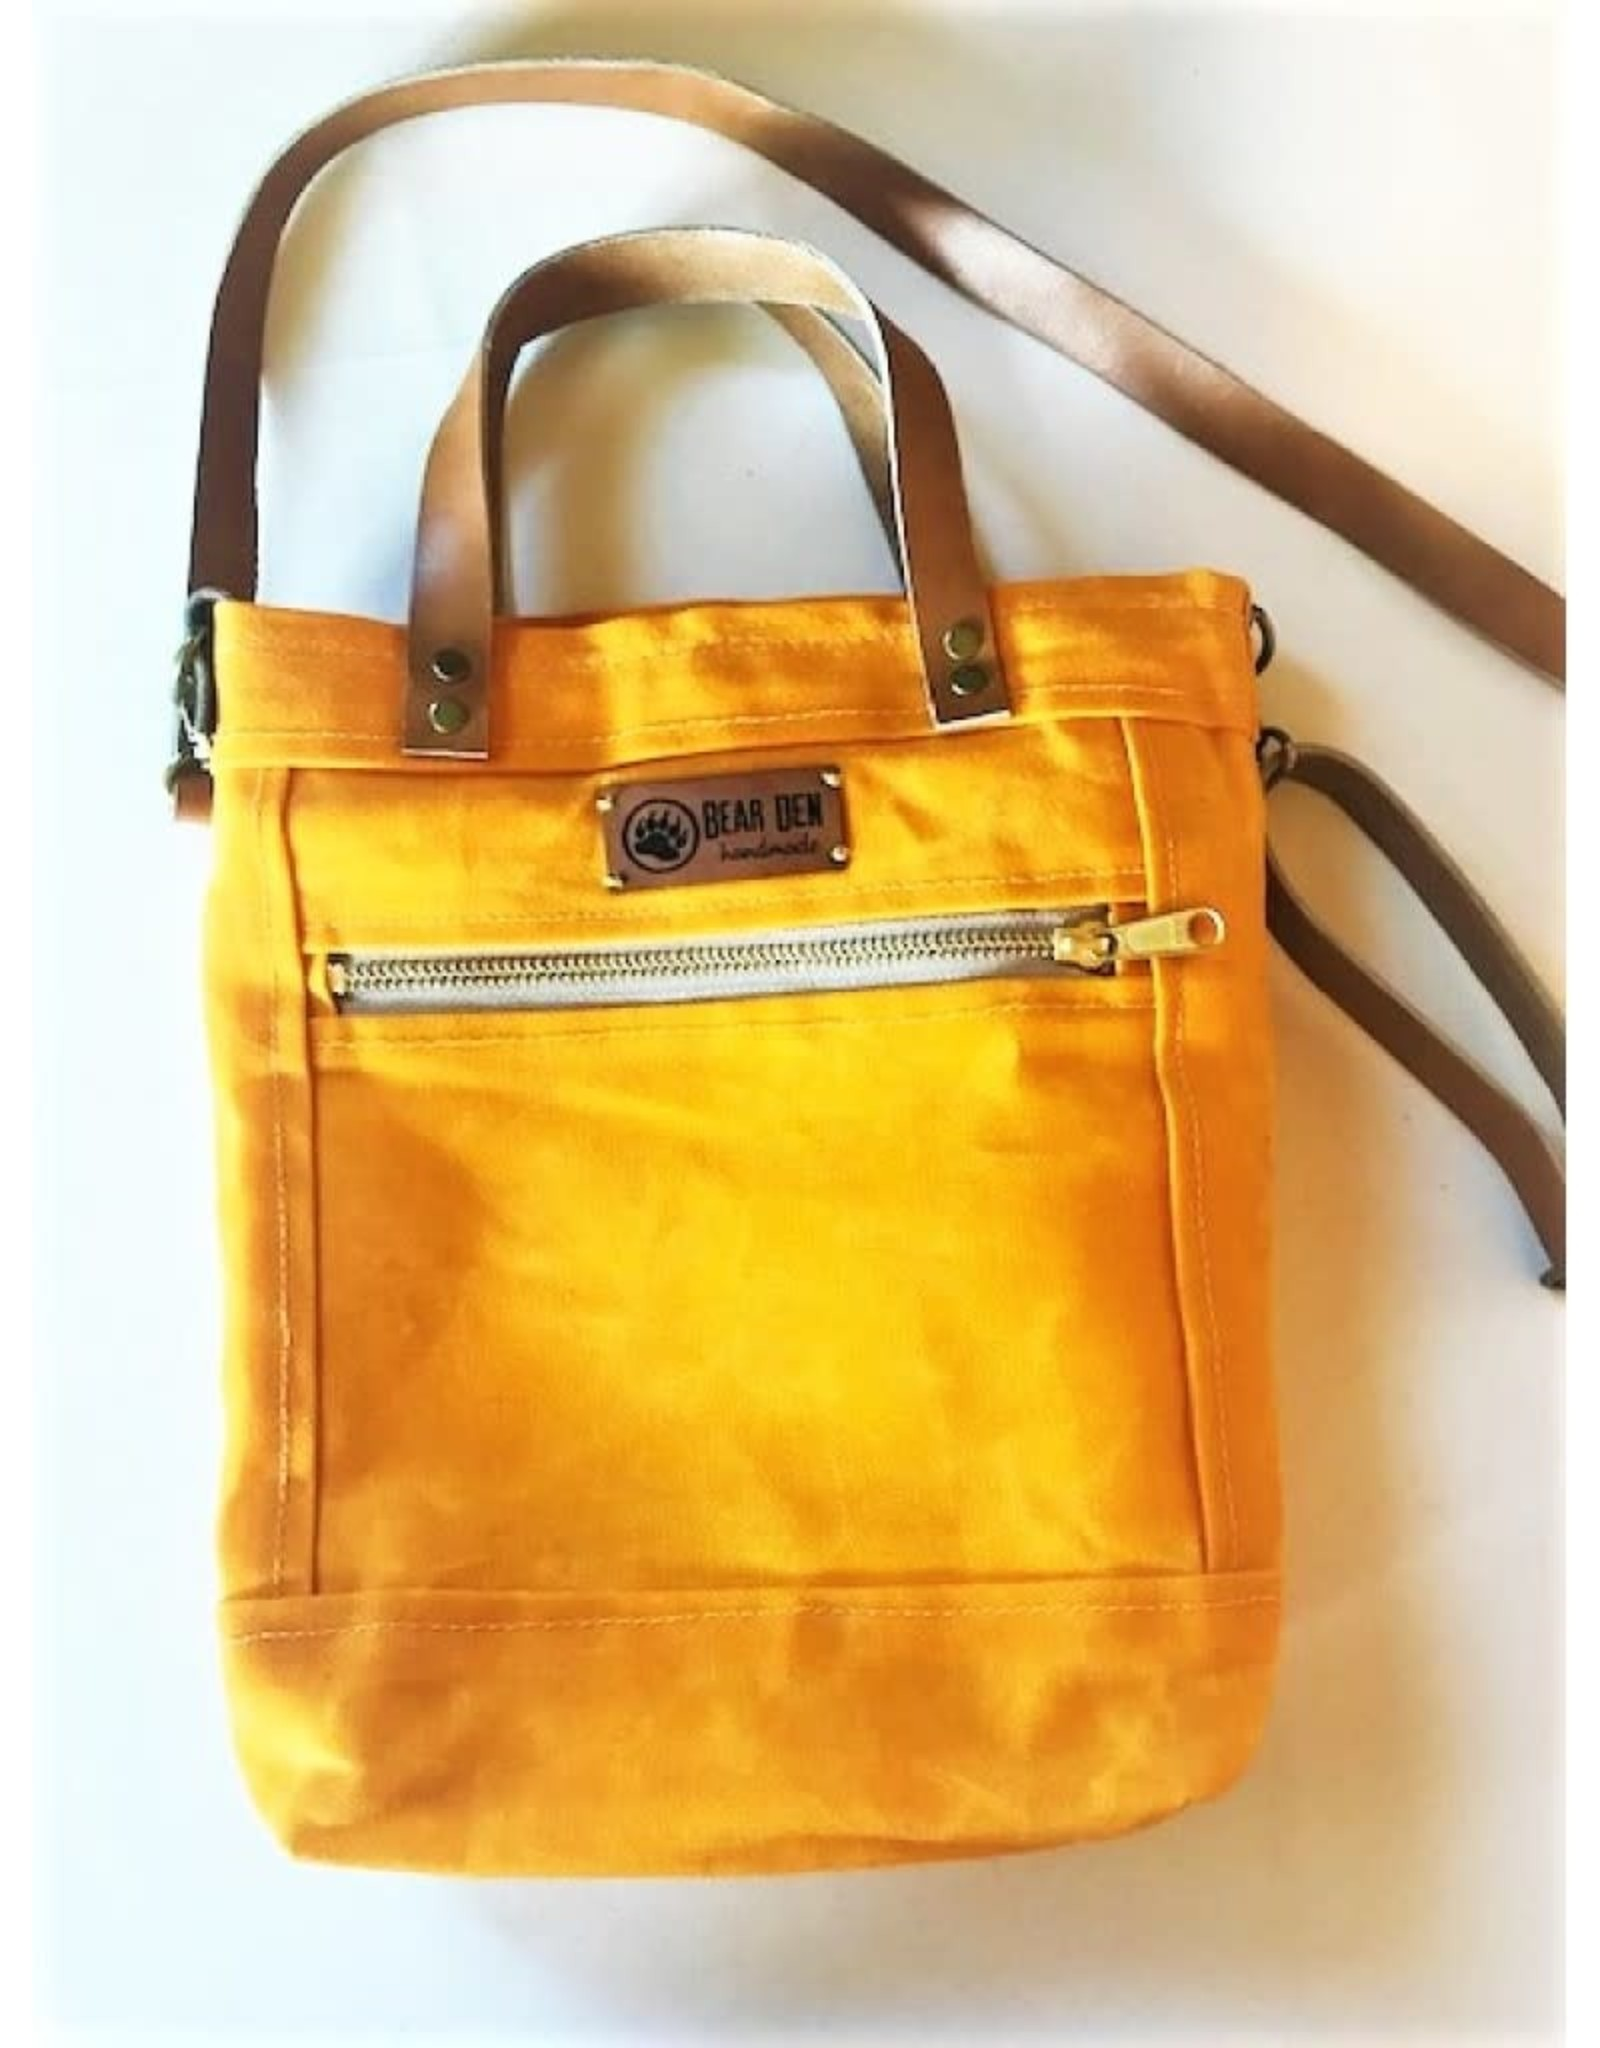 Bear Den Handmade Crossbody Waxed Canvas Tote - Sunflower